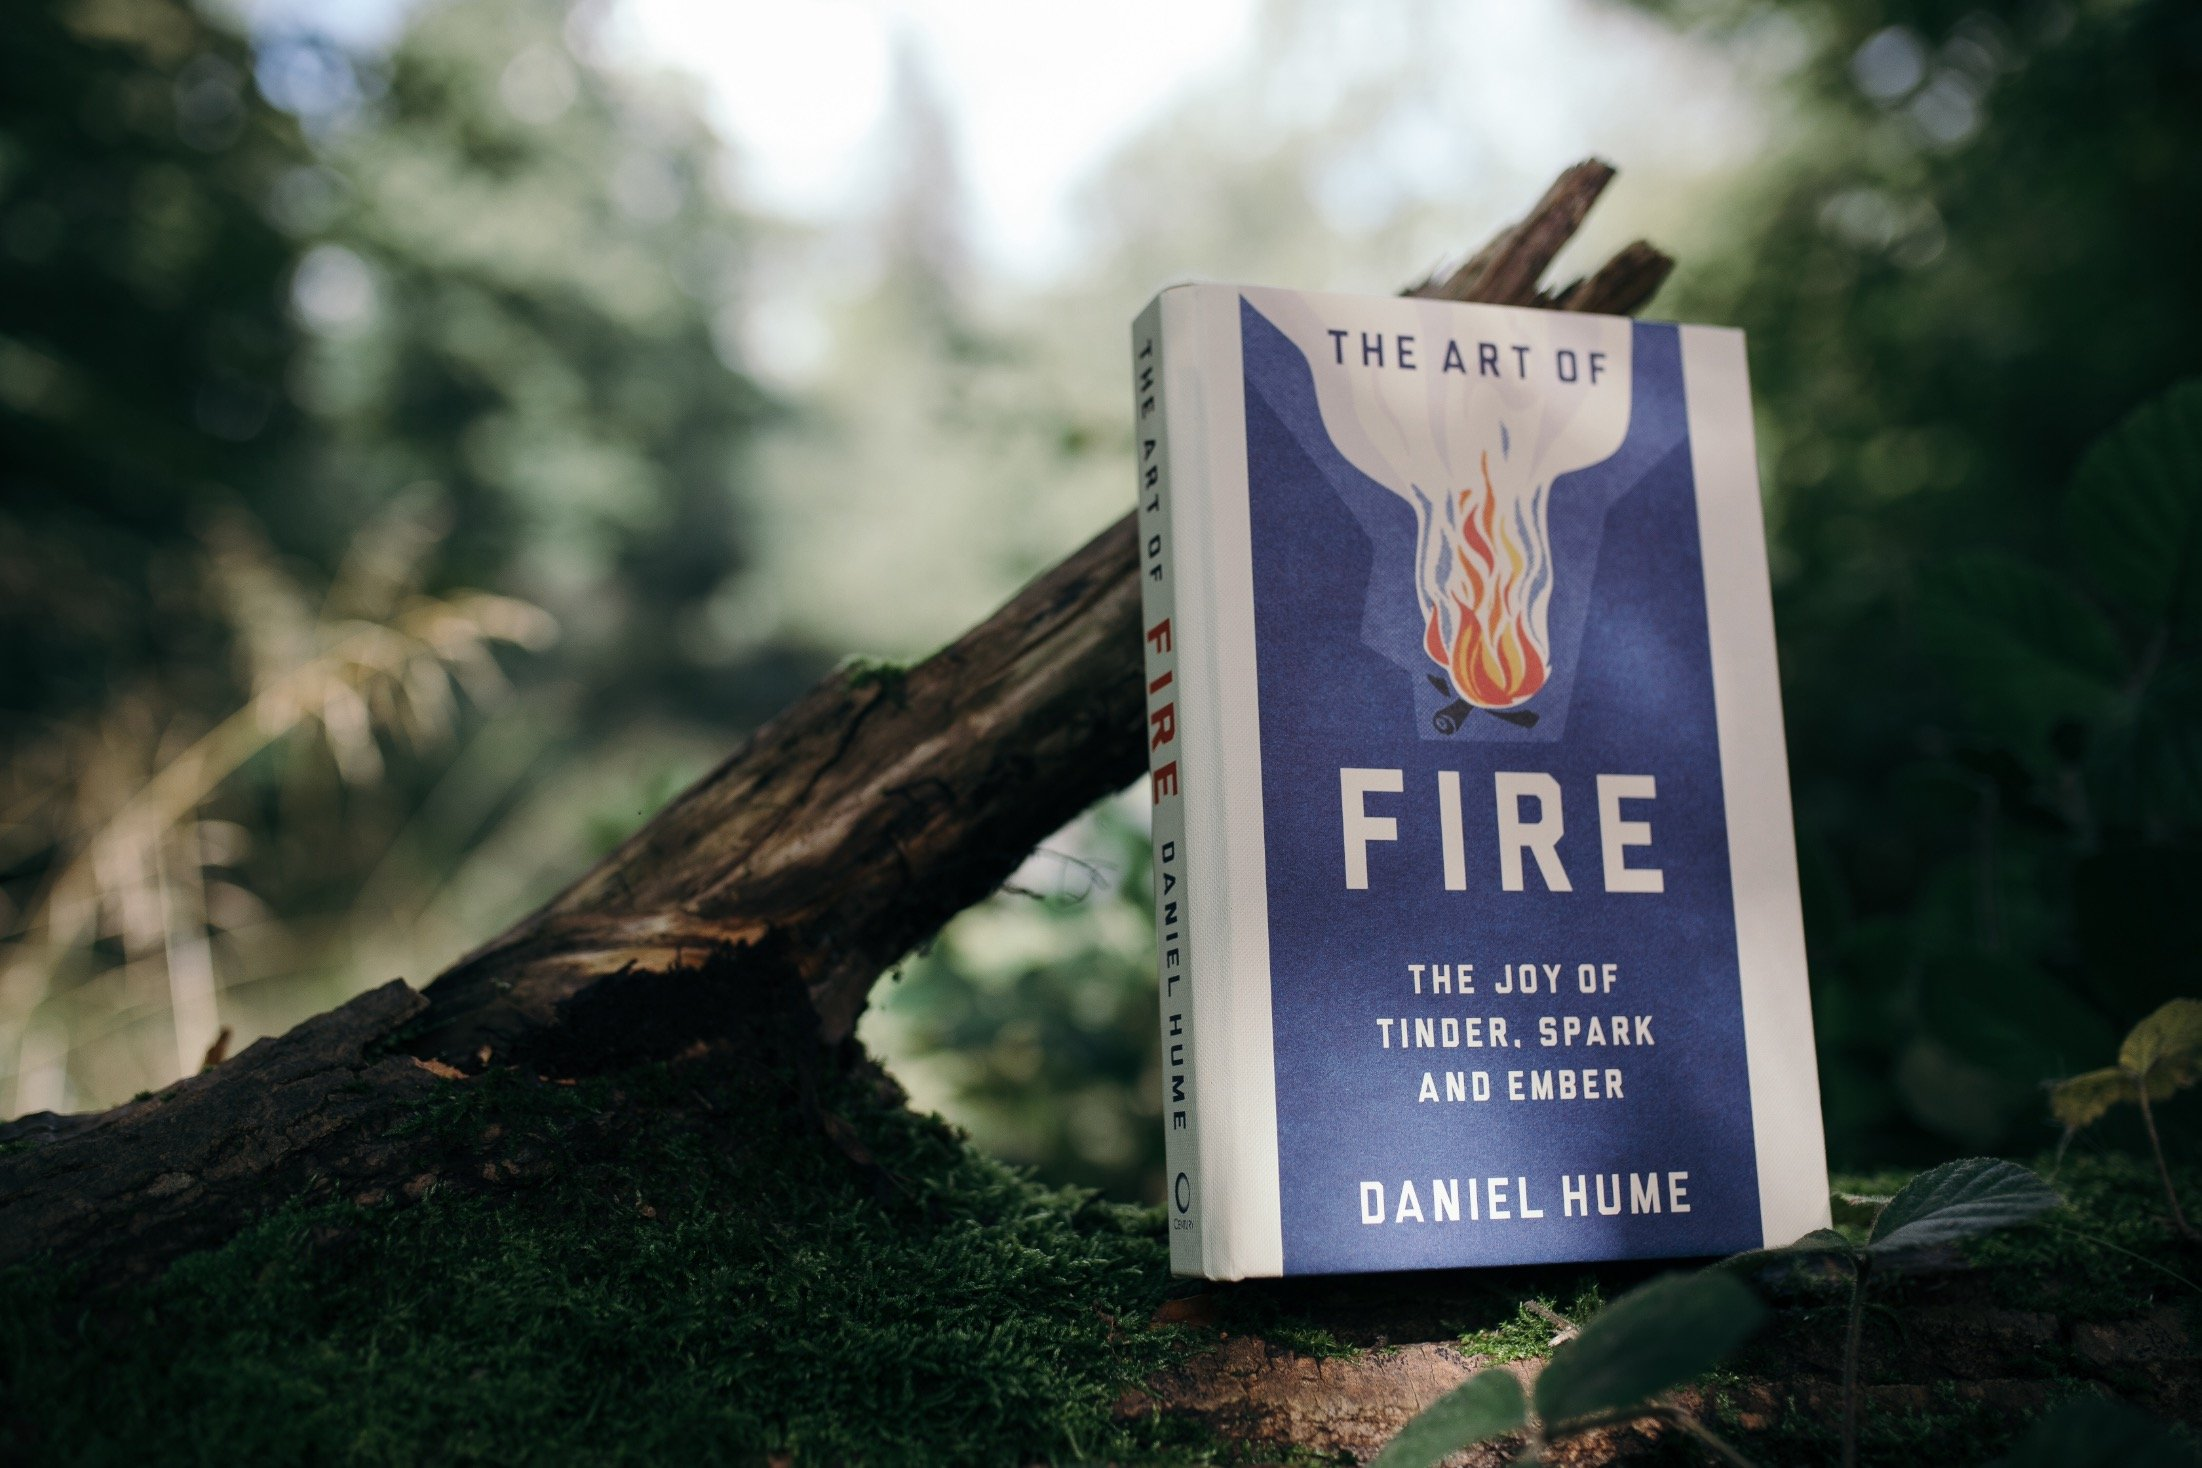 THE ART OF FIRE € 24,95